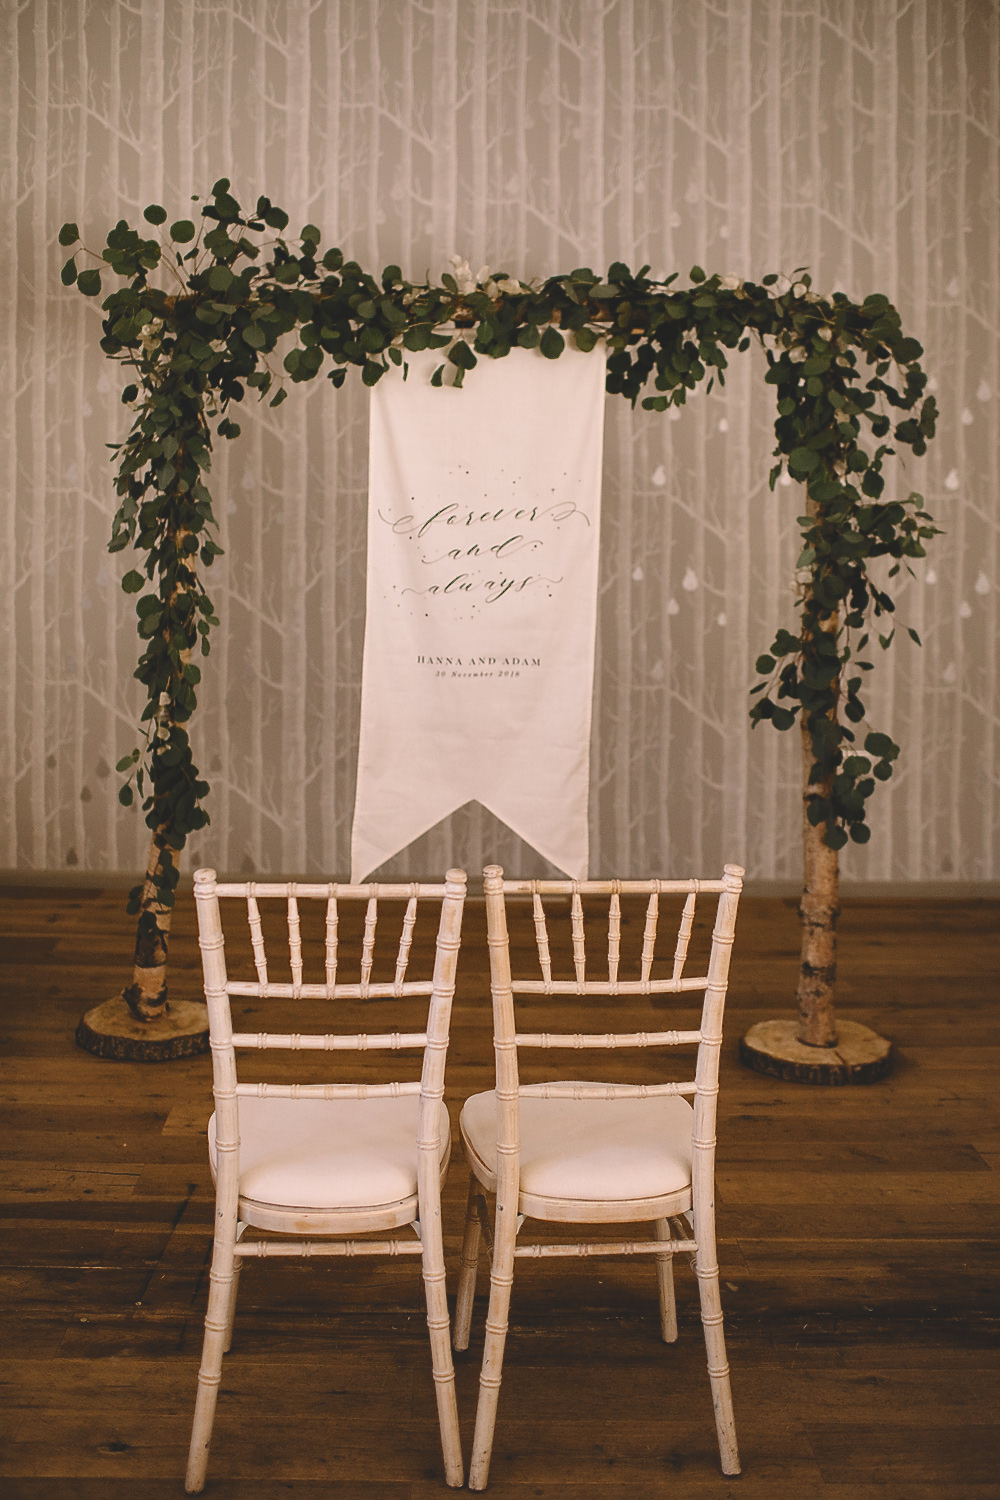 Ceremony Aisle Greenery Foliage Arrch Backdrop Banner Hampton Manor Wedding Carrie Lavers Photography